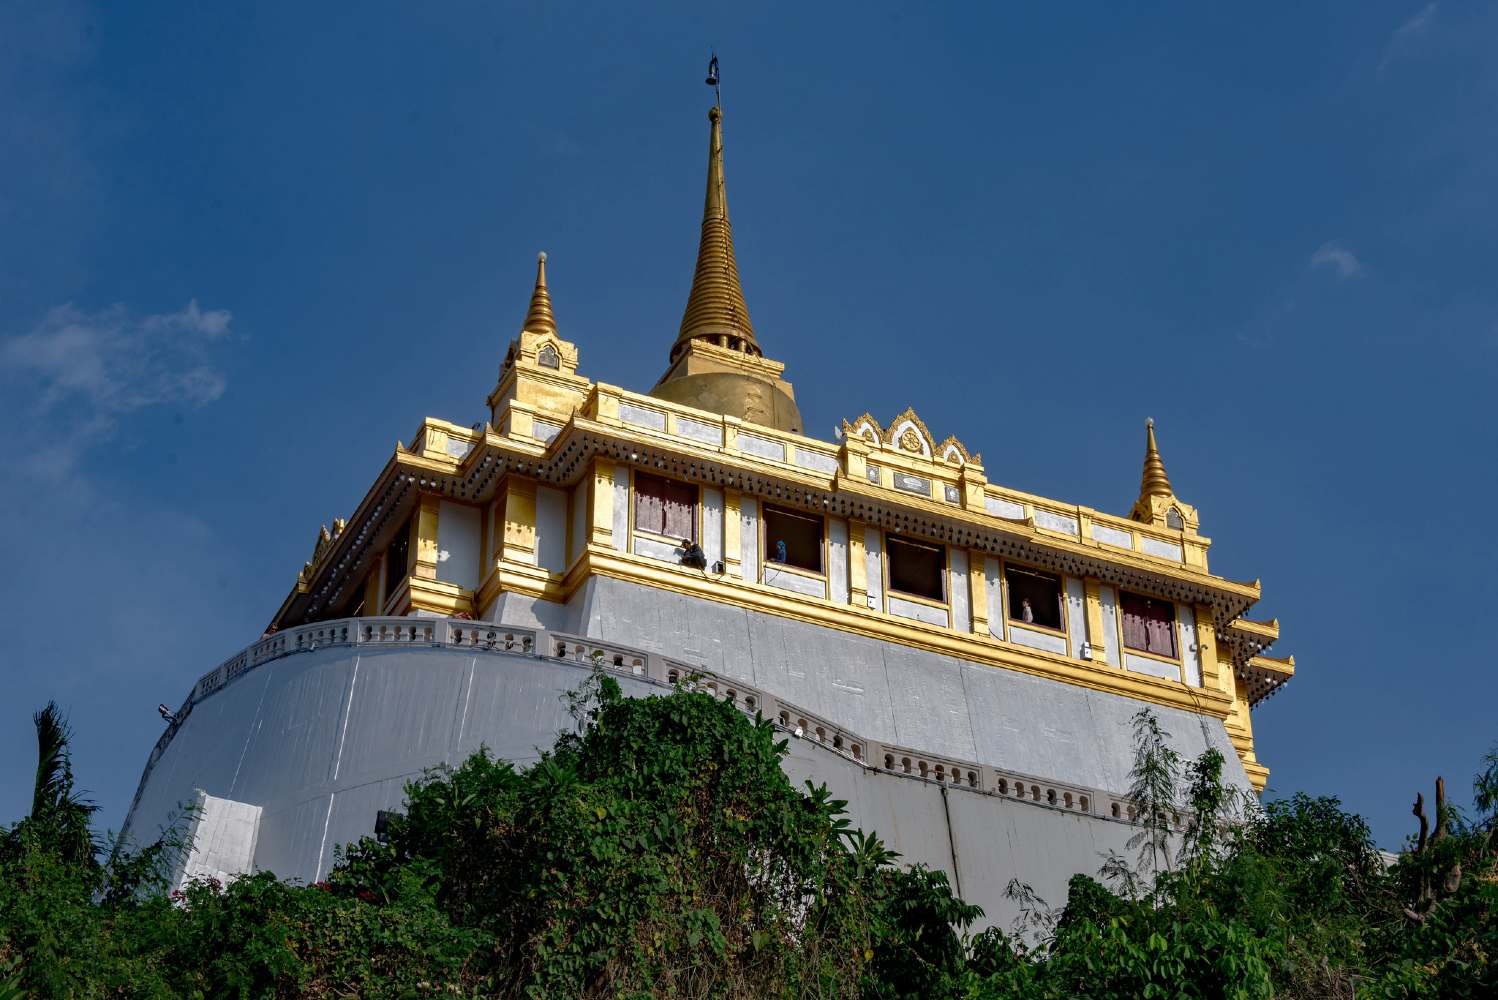 The Wat Saket seen from below